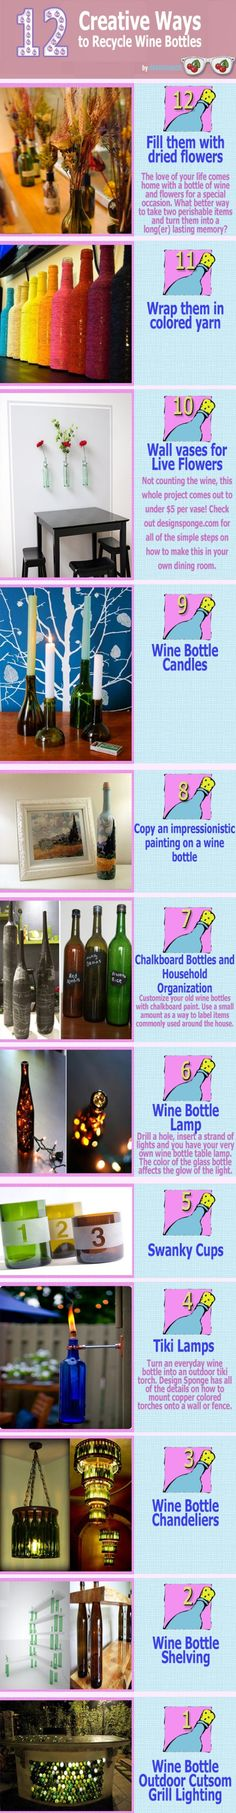 Creative ways to reuse wine bottles